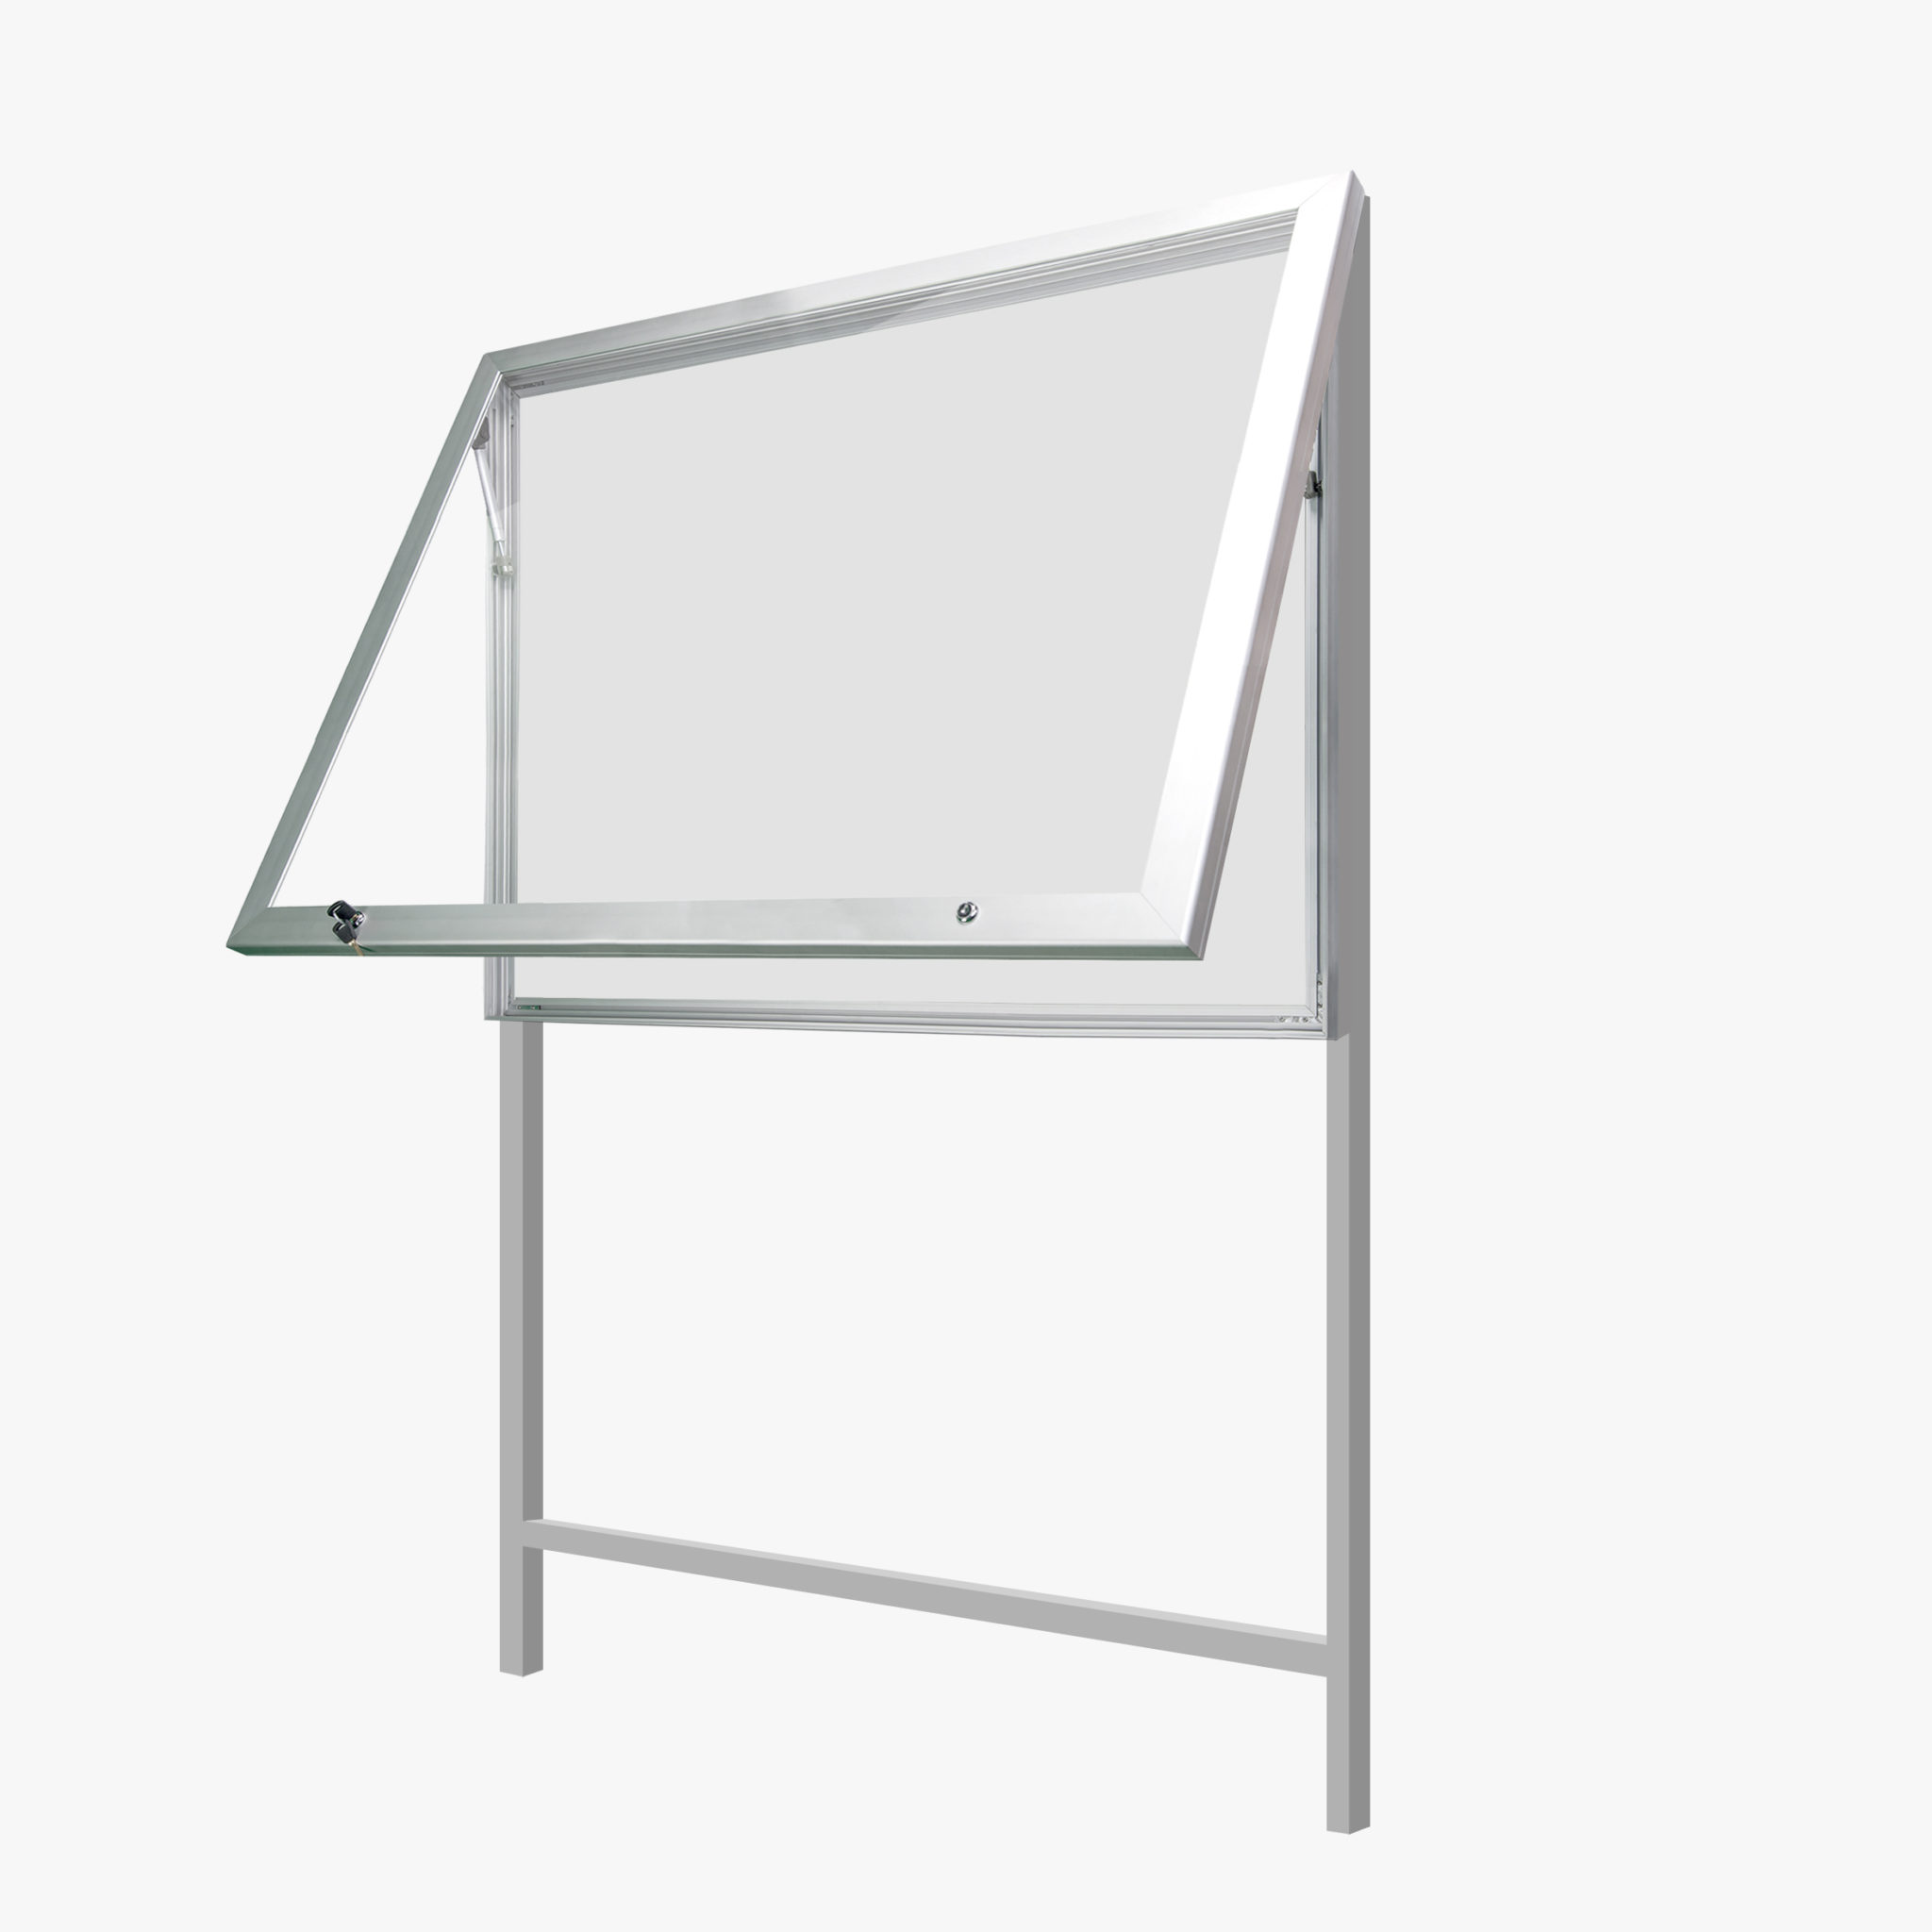 FlexiDisplay Freestanding TuffLok